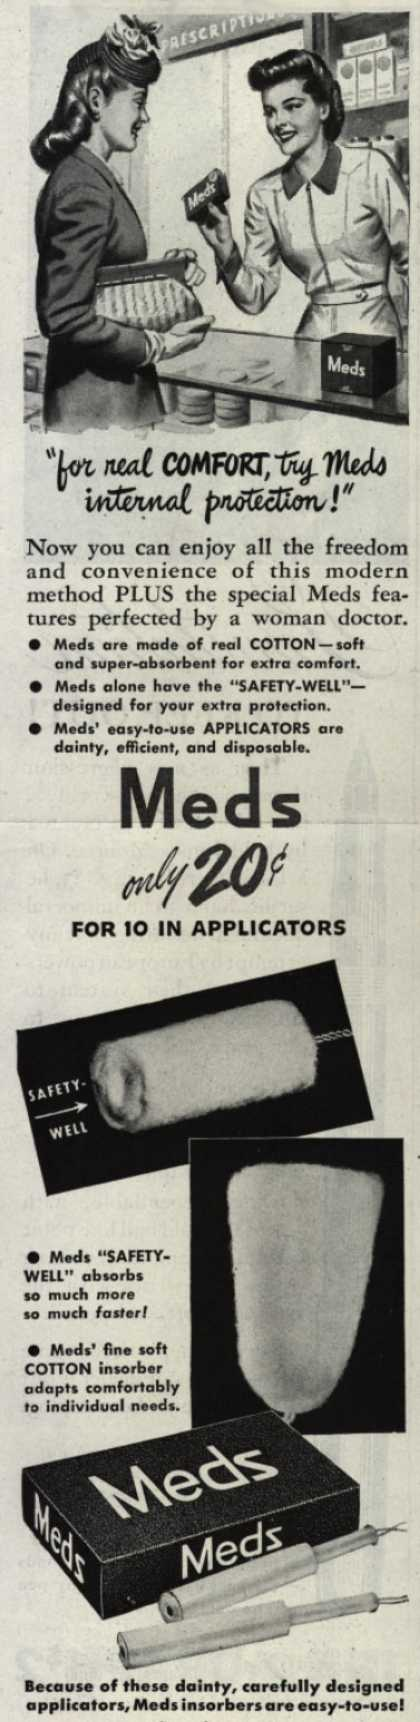 """Personal Products Corporation's Meds Tampons – """"for real comfort, try Meds internal protection!"""" (1945)"""